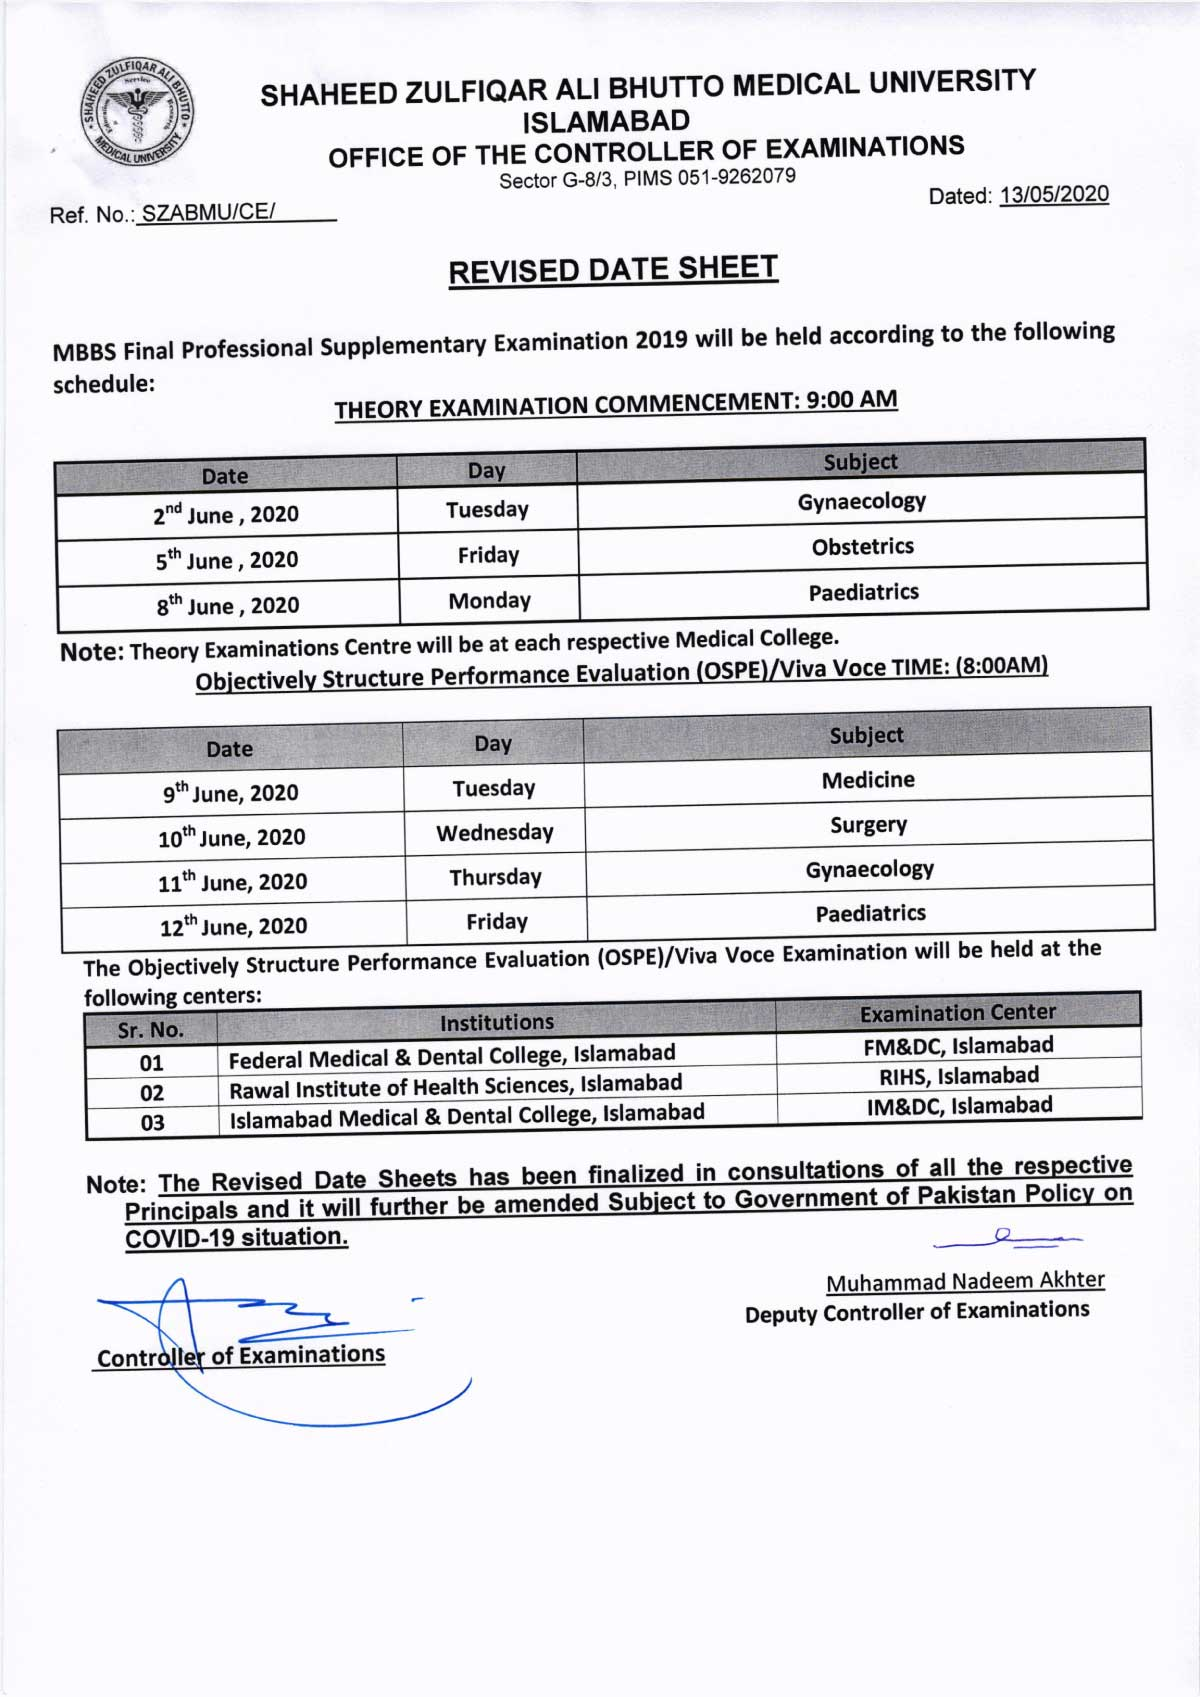 Revised - Date Sheet of MBBS All Professionals Supplementary Examination 2020